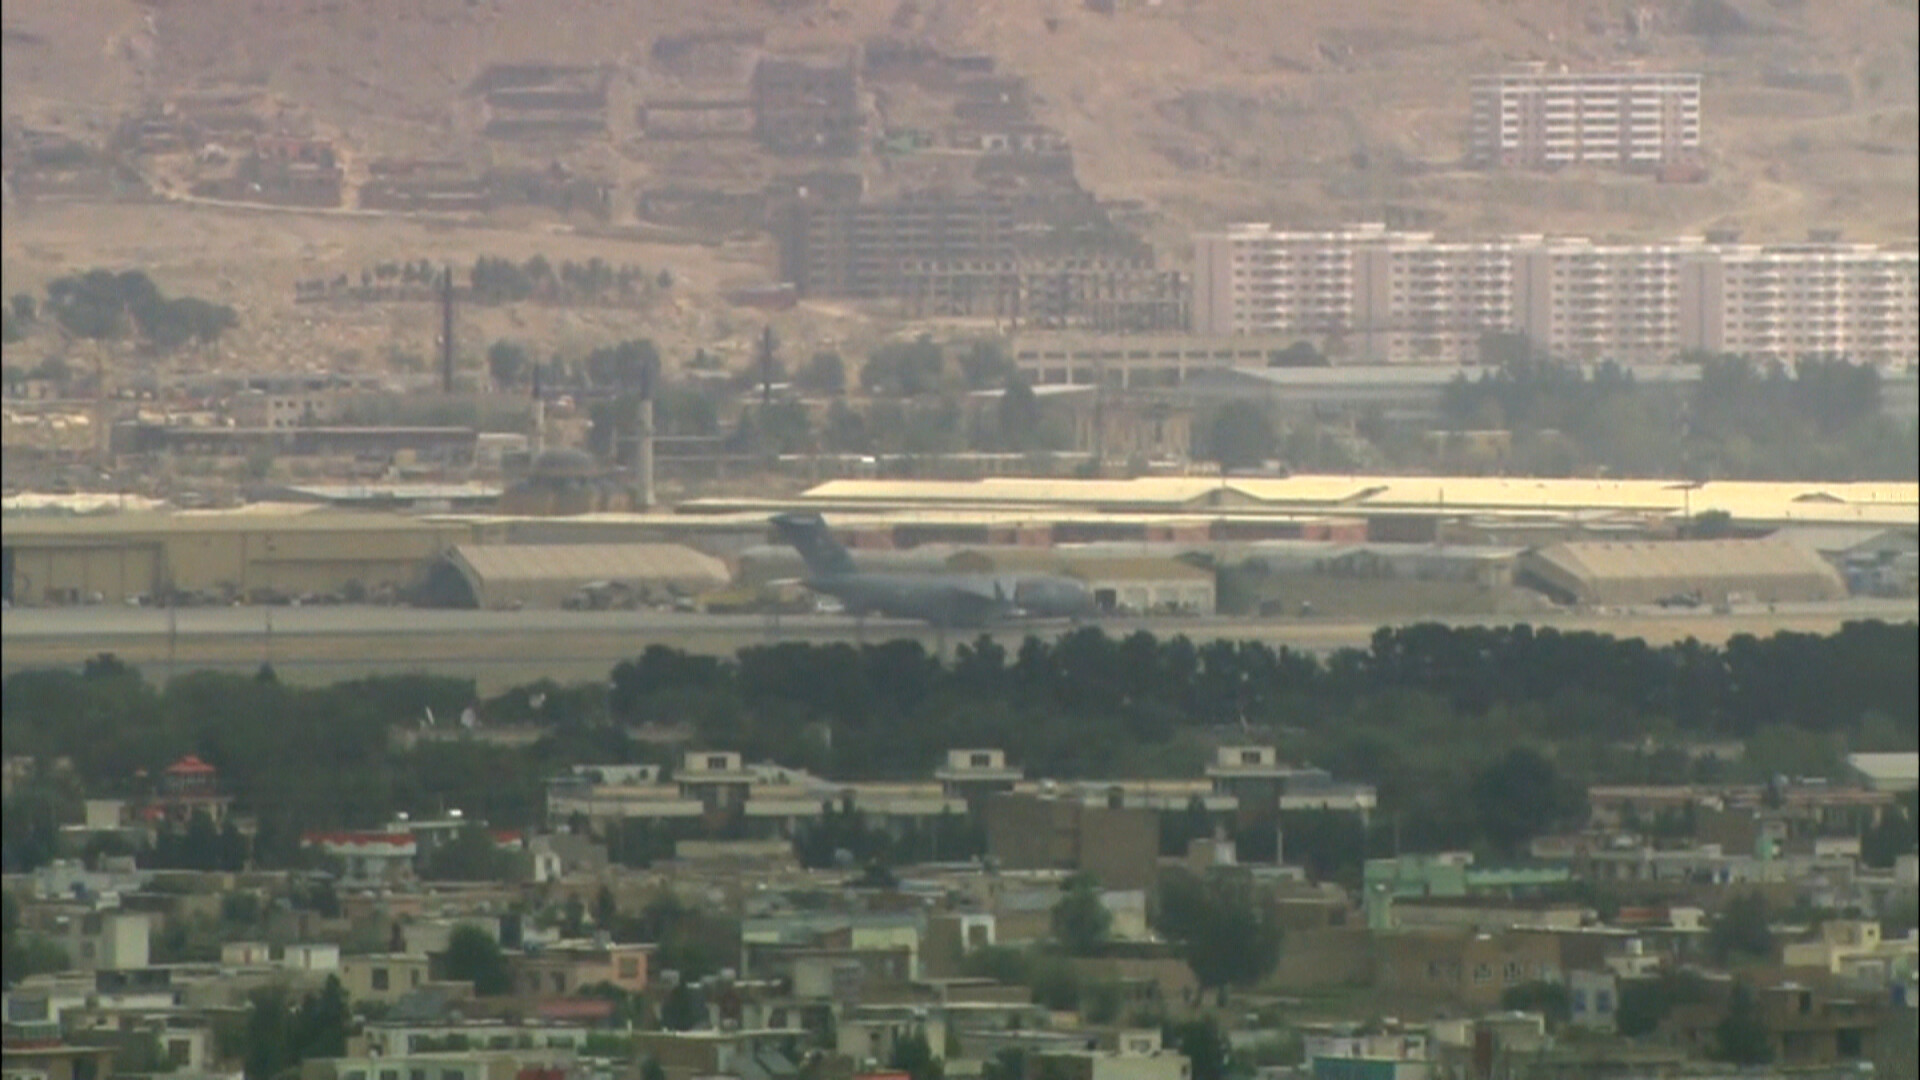 CENTCOM disputes Air Force account of attempted hijacking at Kabul airport during Afghanistan evacuation